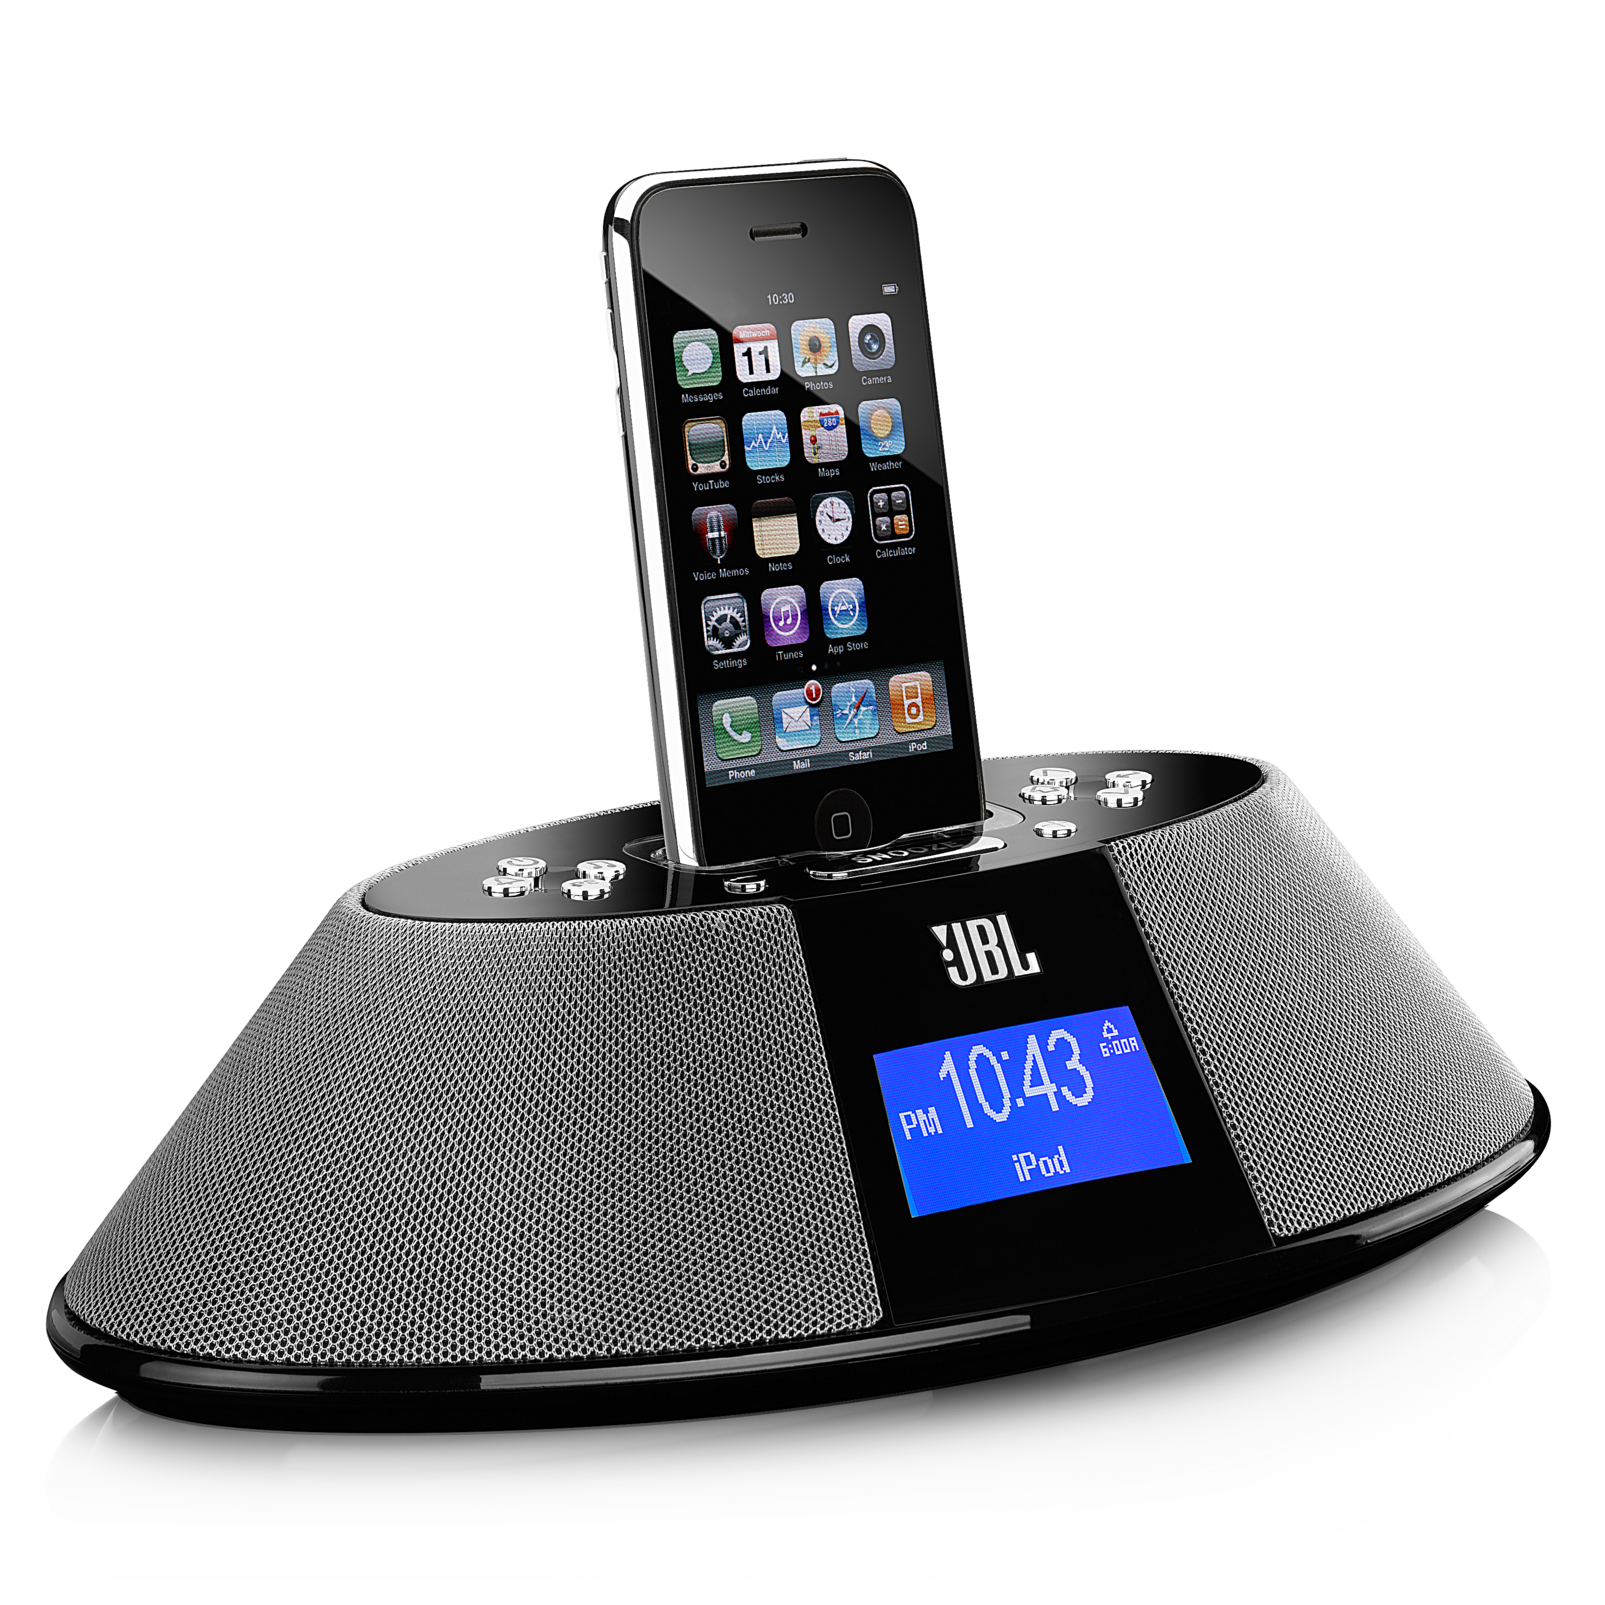 JBL On Time 200P | AM/FM radio dock for iPod/iPhone